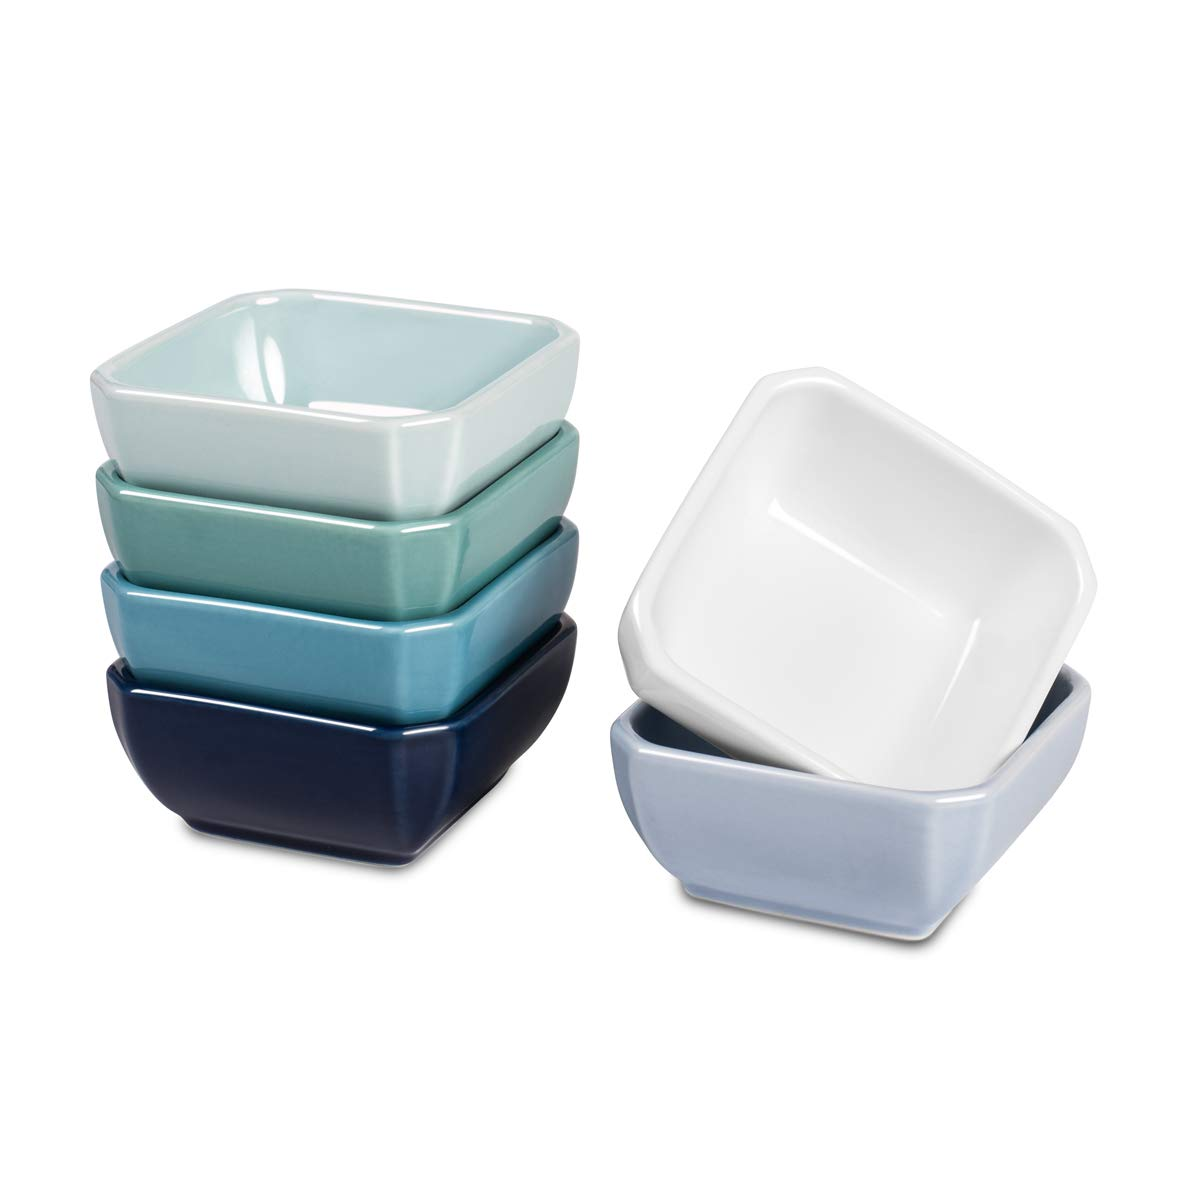 Delling 3 Oz Ceramic Dip/Dipping Bowls Set - Dipping Soy Sauce Dishes/Bowls Small Sauce Cups for Sushi Tomato Sauce, Soy, BBQ-Chip and Serving Bowls Set - Set of 6,Colorful